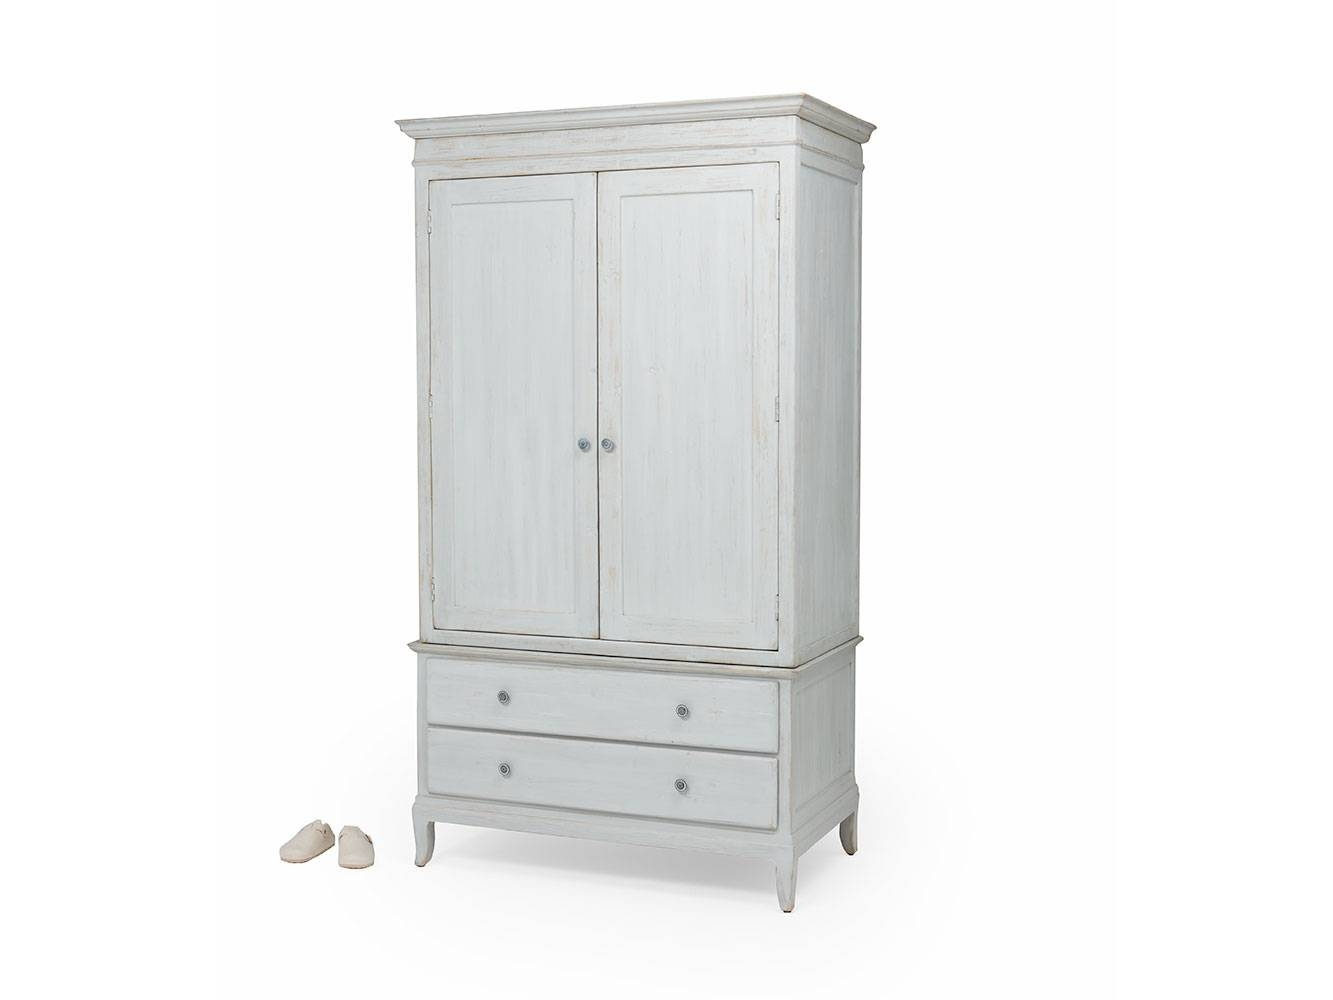 Flutterby Wardrobe | Reclaimed Wood Wardrobe | Loaf within White Wood Wardrobes (Image 3 of 15)